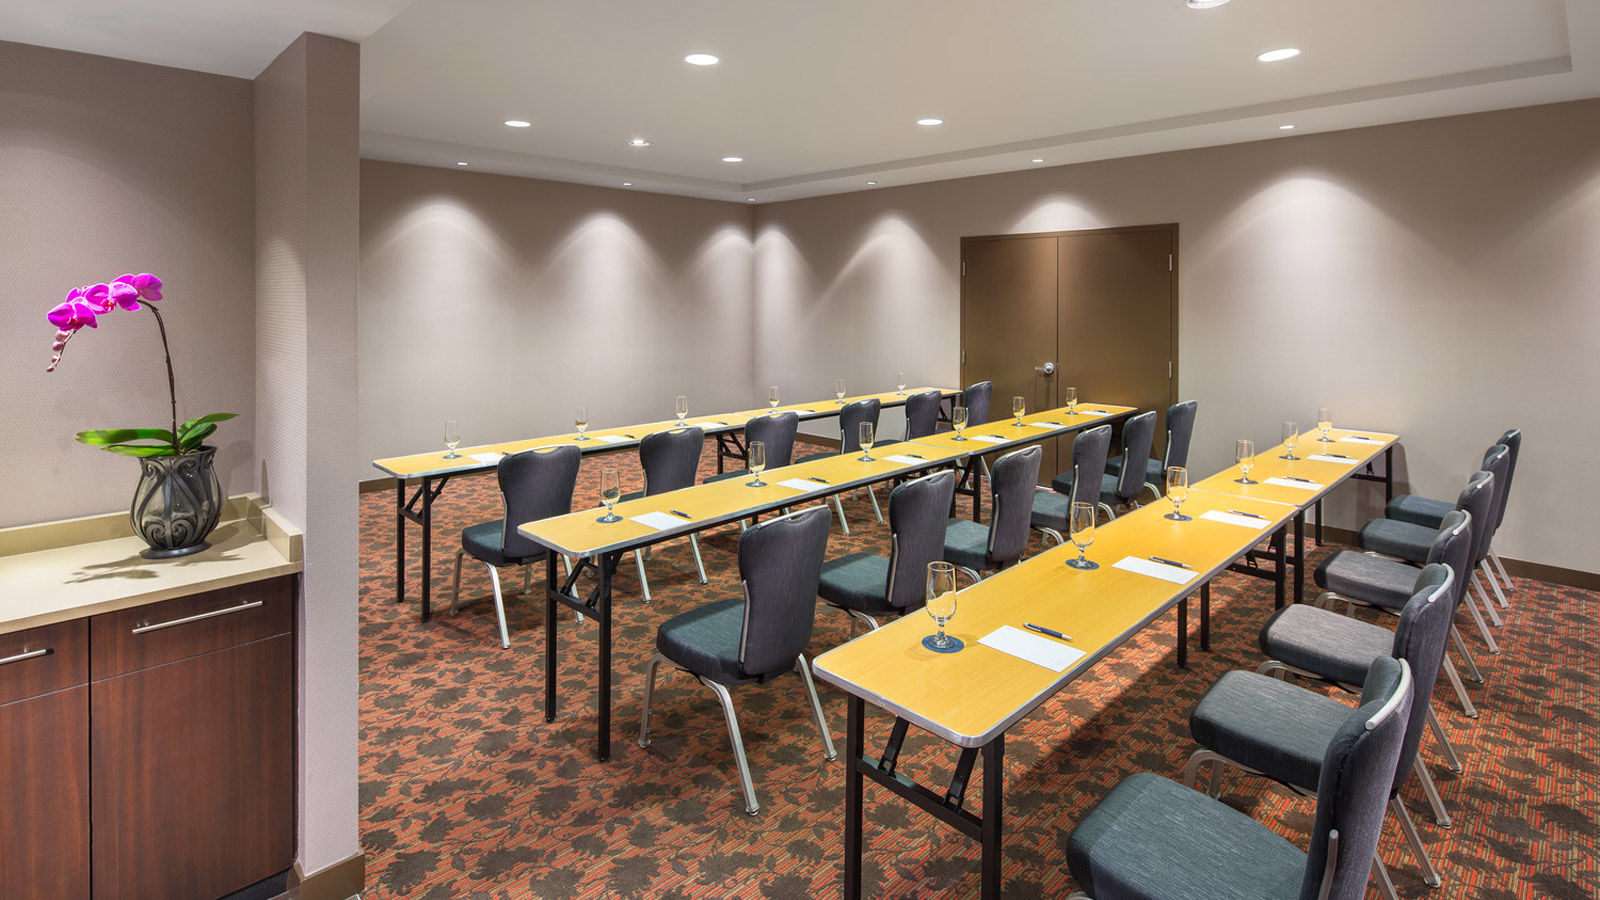 Vancouver Airport Hotel Conference Facilities - Steveston Classroom